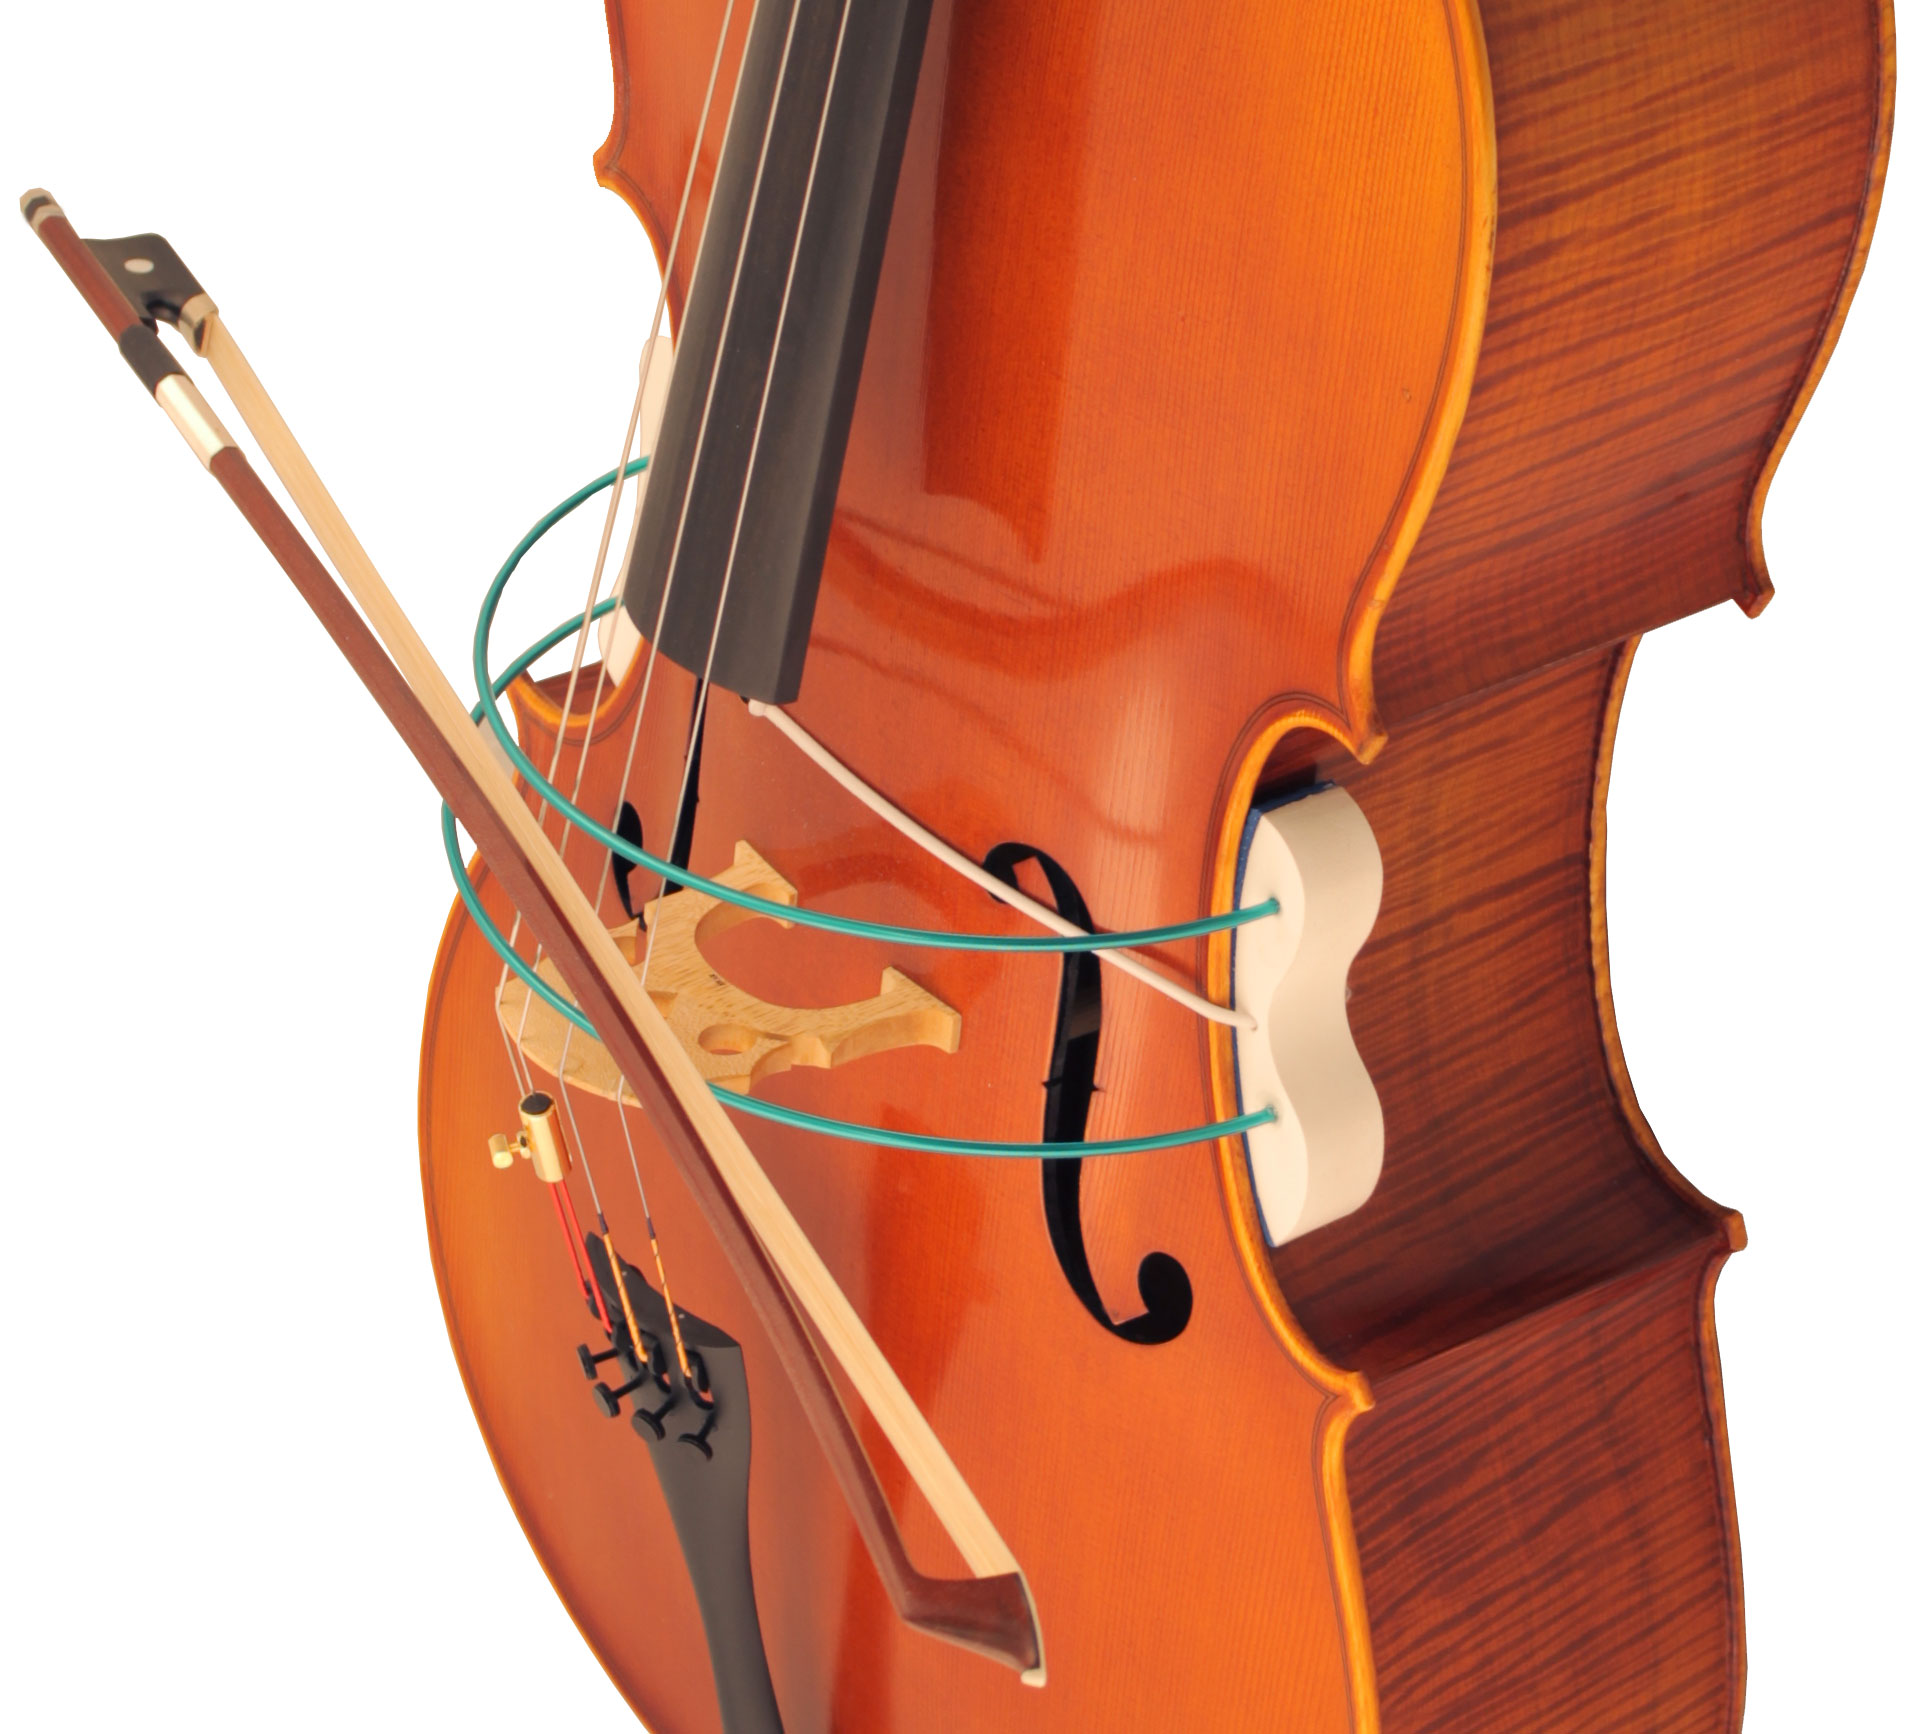 Cello Bow Force